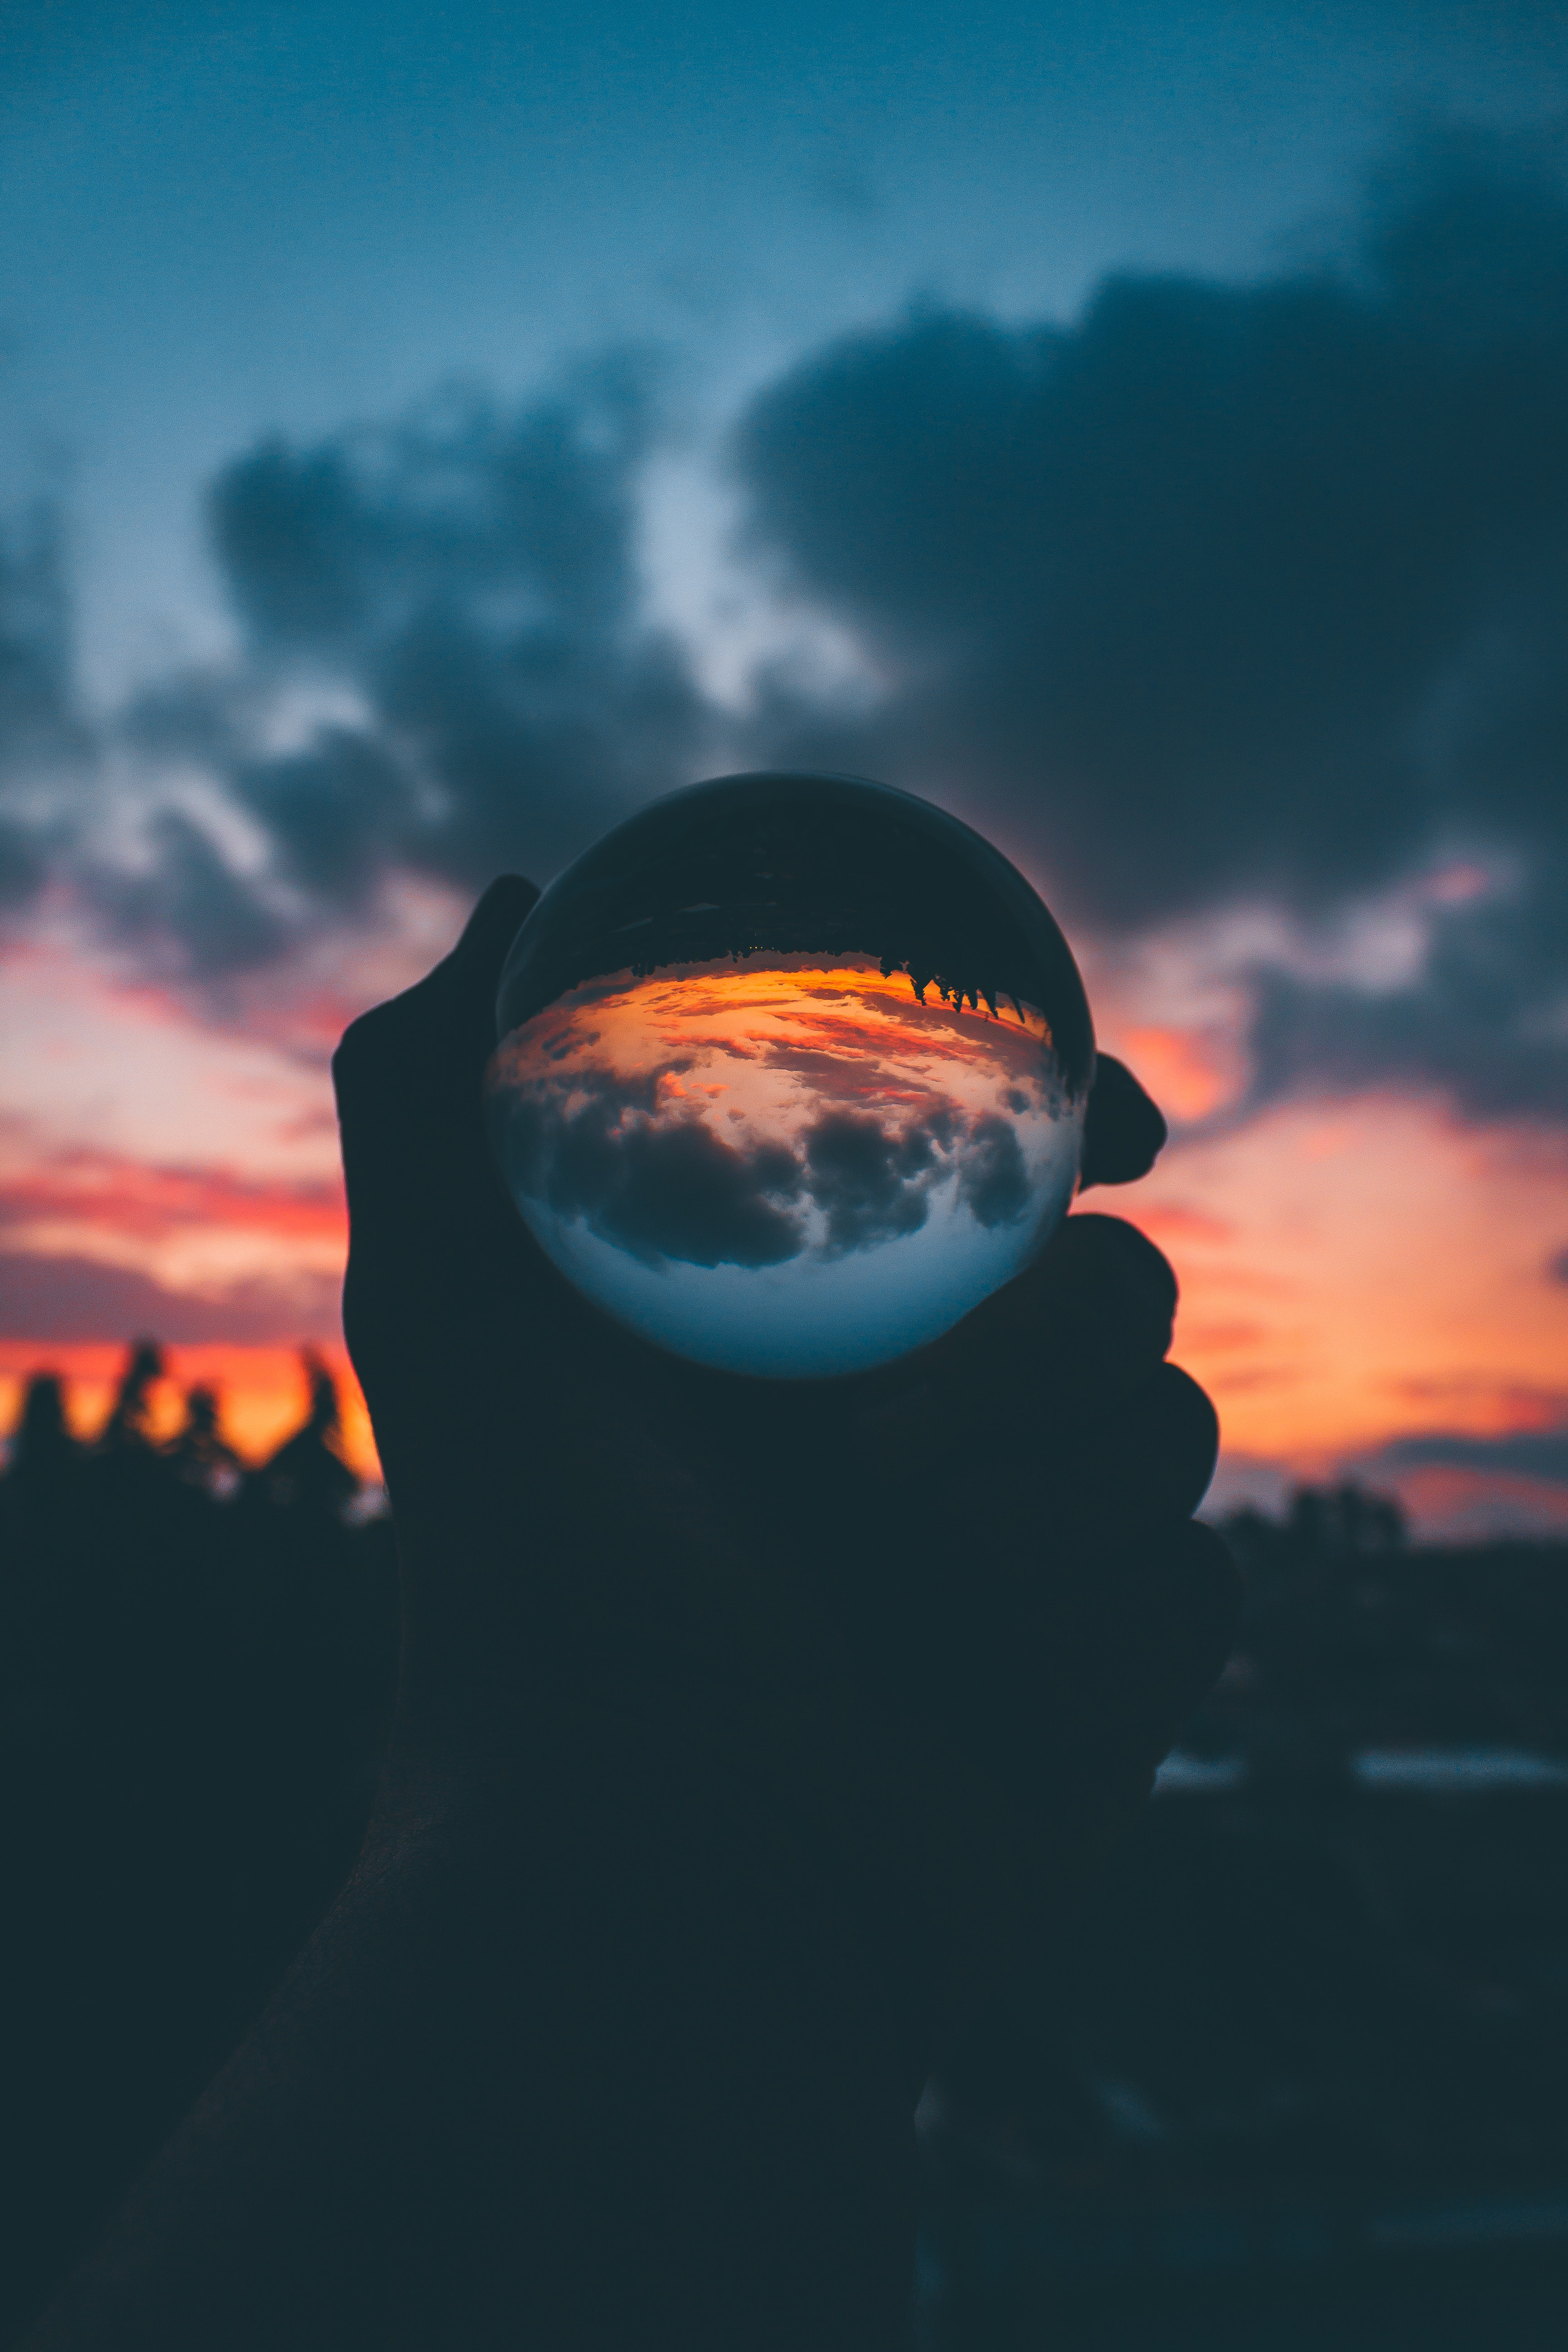 142987 download wallpaper Glass, Sunset, Reflection, Dark, Hand, Ball screensavers and pictures for free